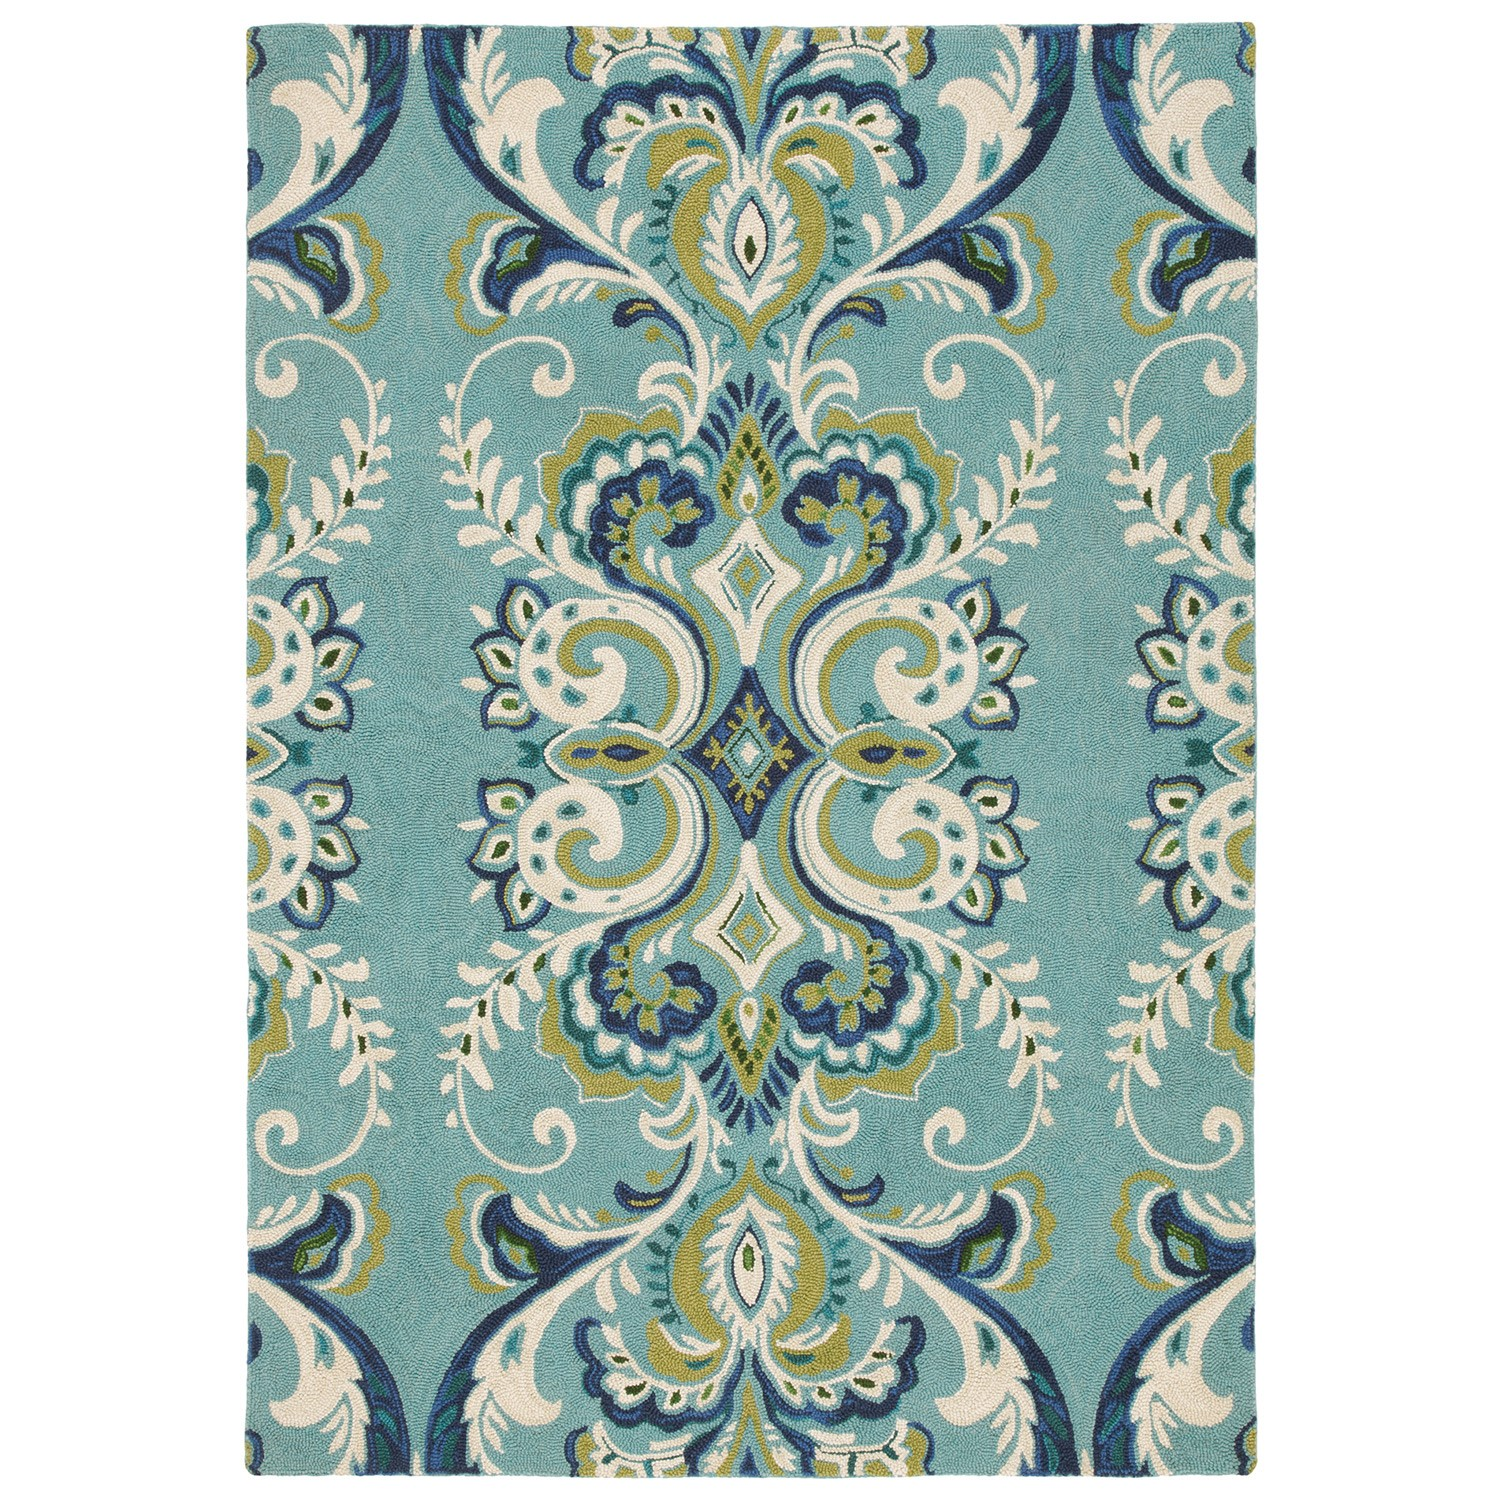 Wondrous Decorative Design company c rugs with harmony colors for indoor or outdoor ideas